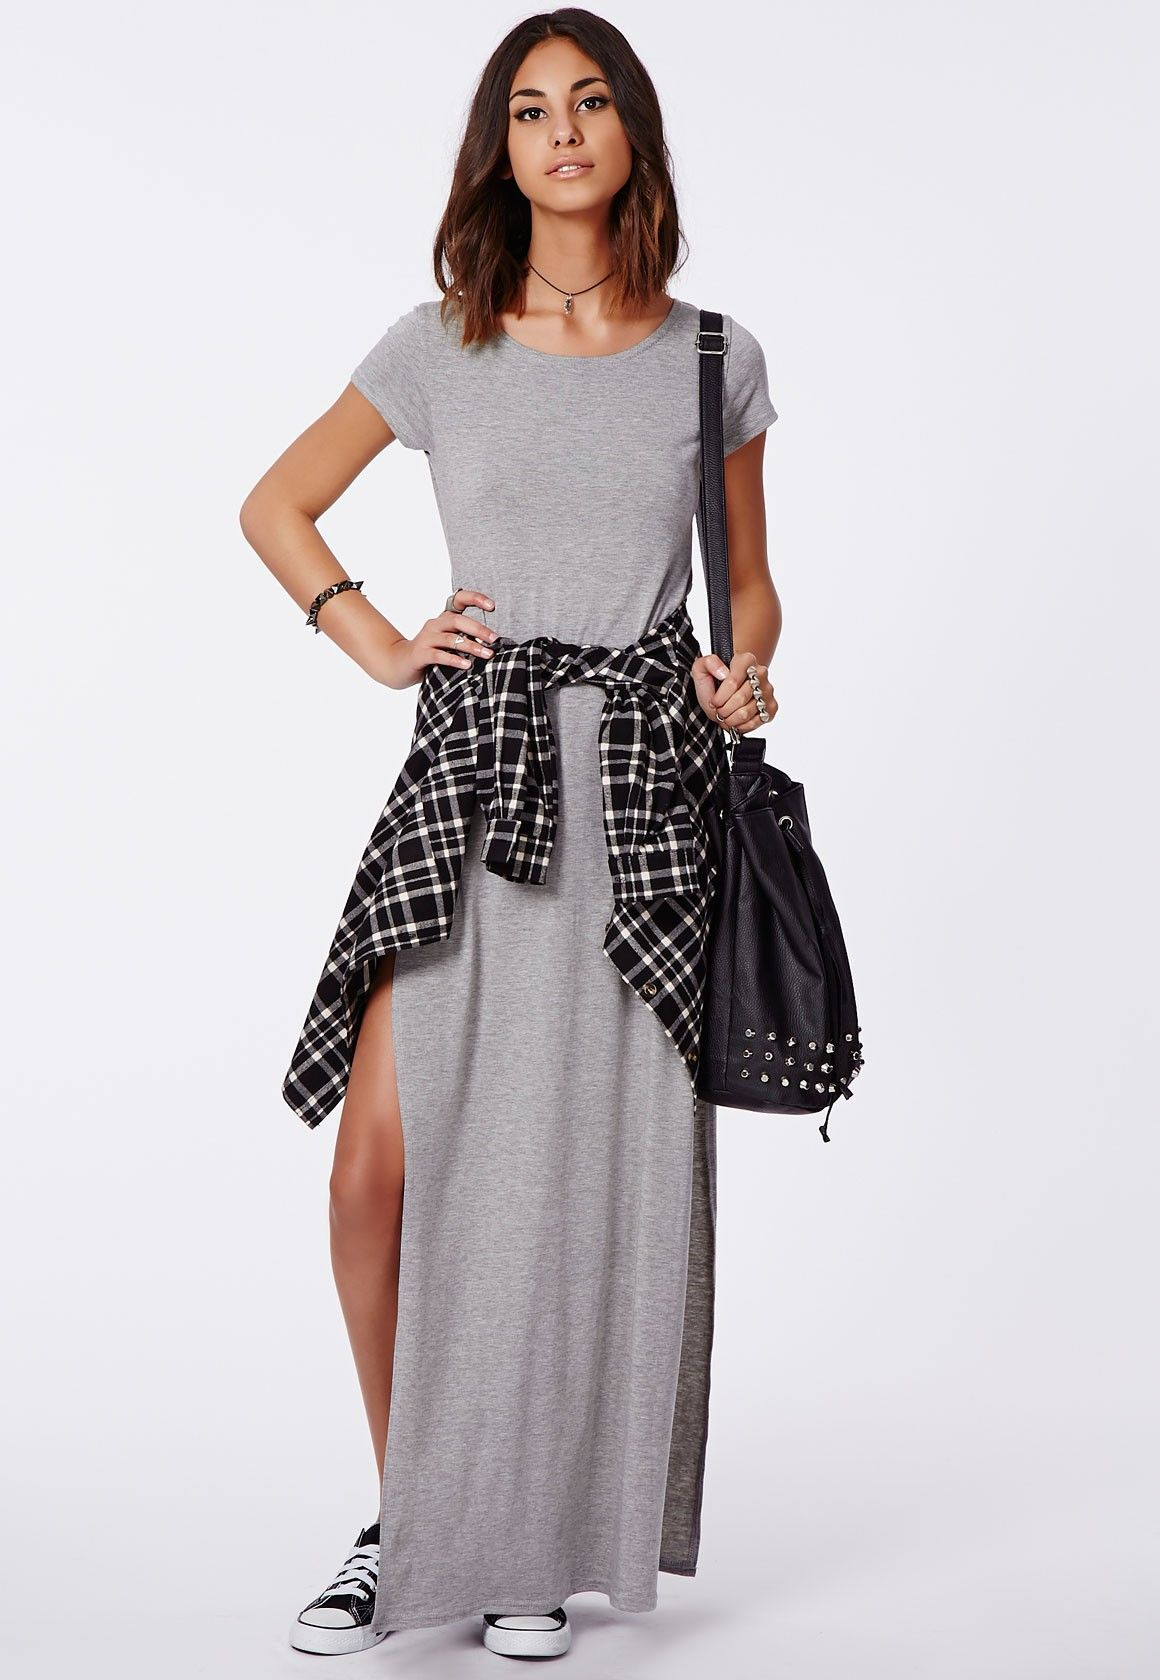 Side Split Maxi Dress // shirt tied around the waist | To Have ...